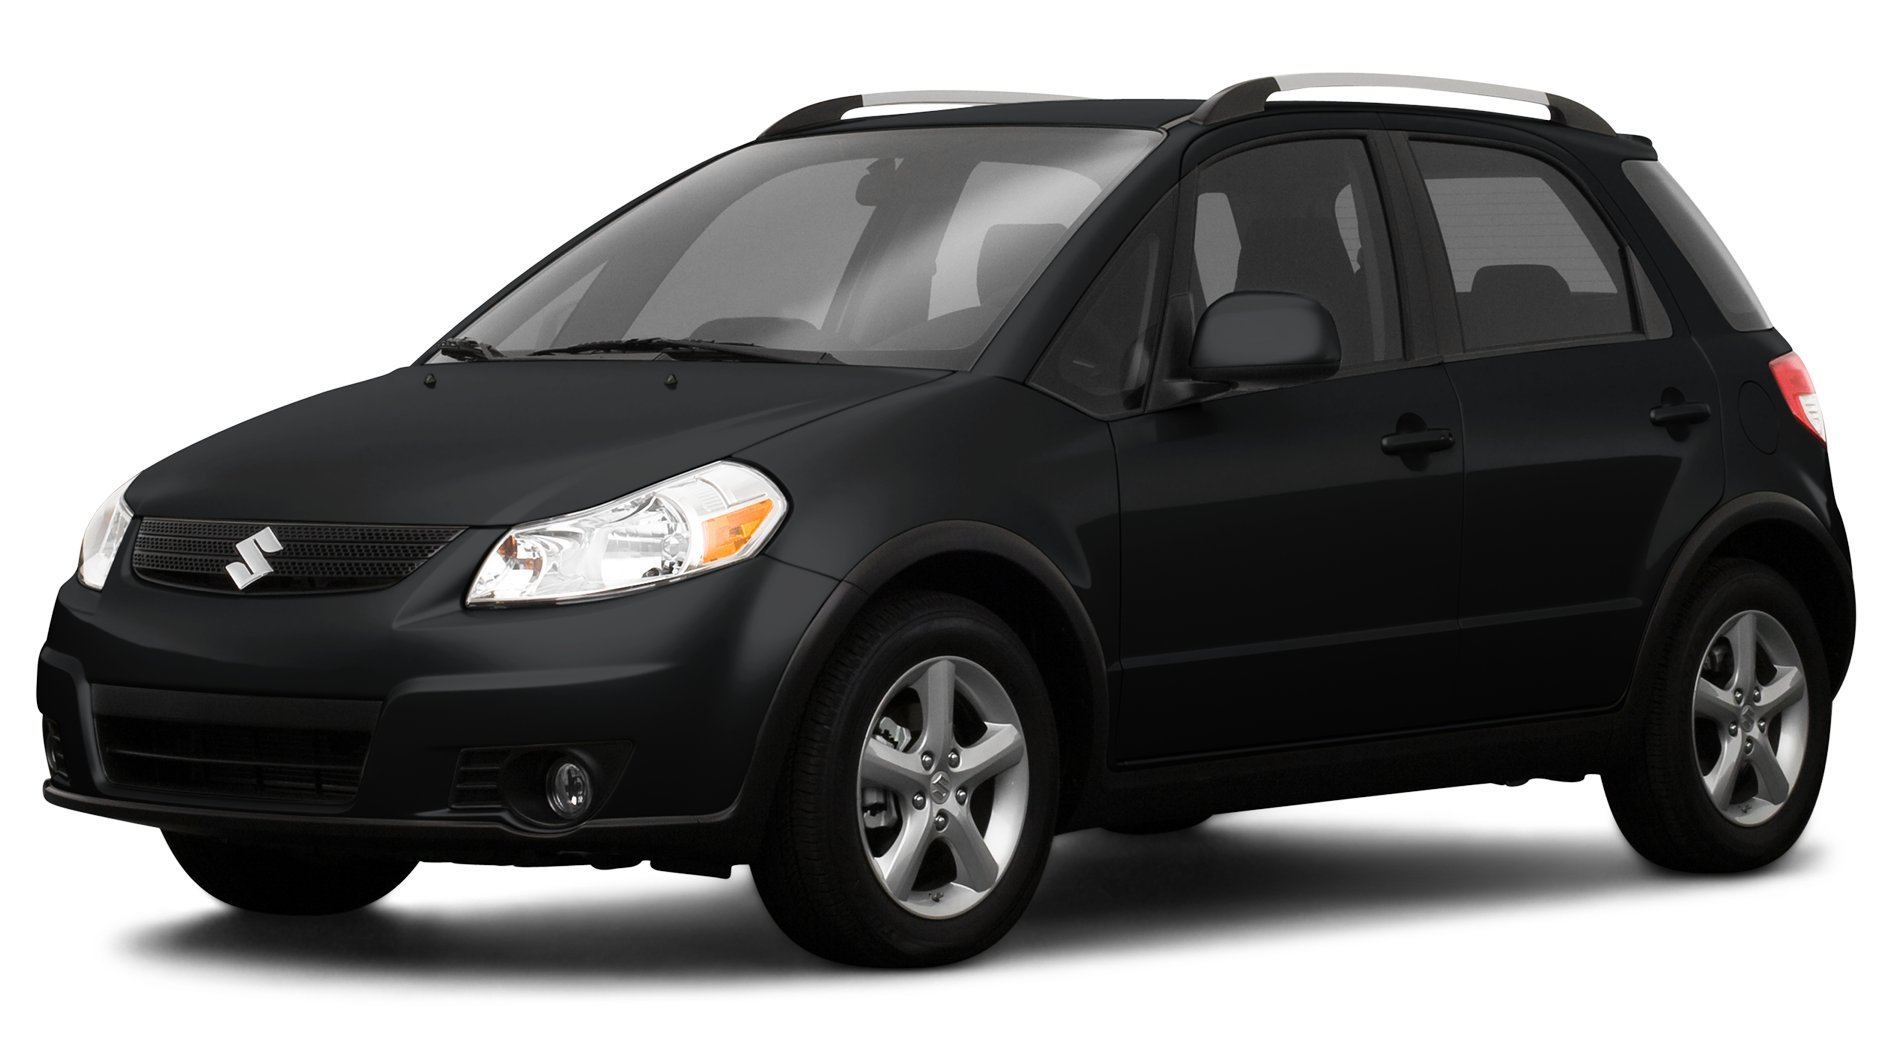 2009 suzuki sx4 reviews images and specs. Black Bedroom Furniture Sets. Home Design Ideas